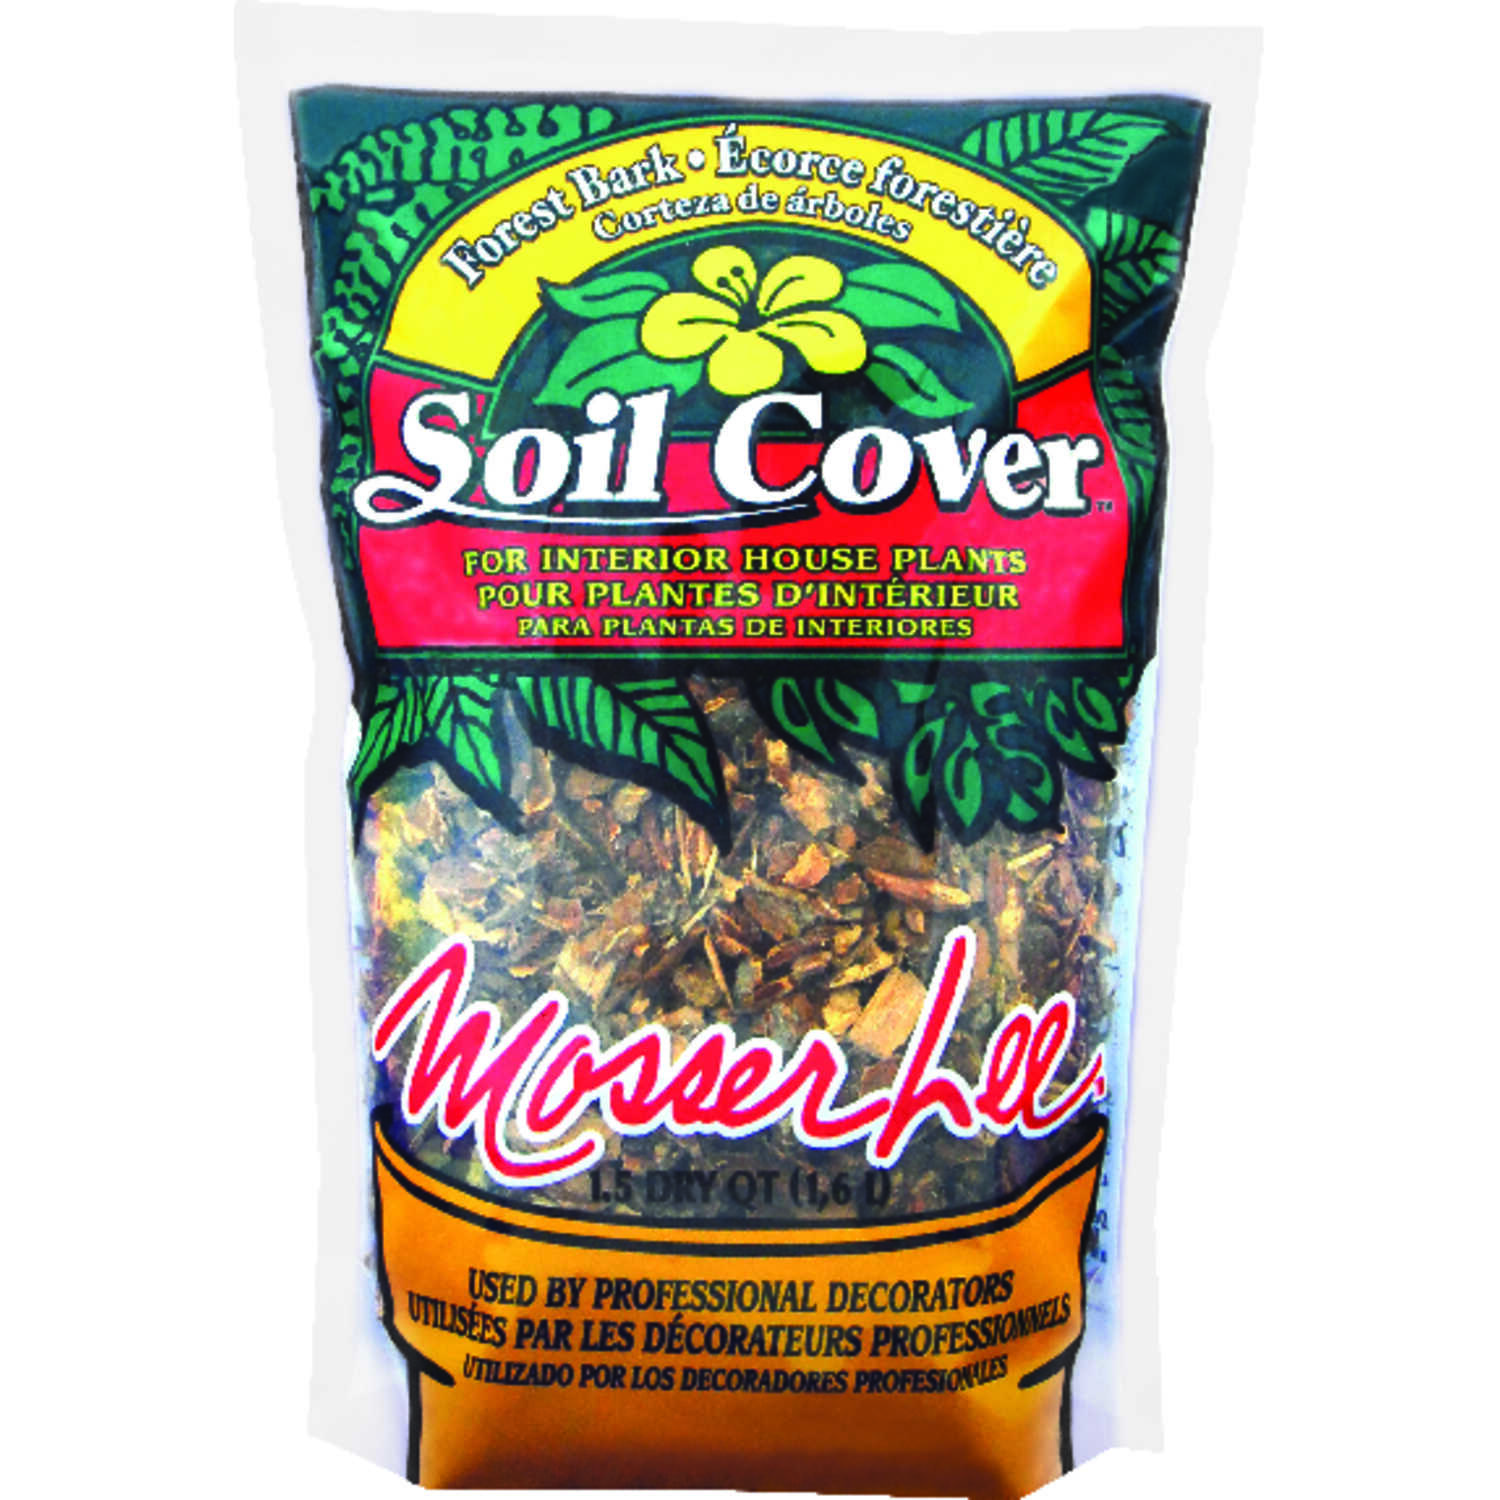 Mosser Lee  Dark Brown  Decorative Soil Cover  1.5 qt. 0.5 sq. ft. Forest Bark